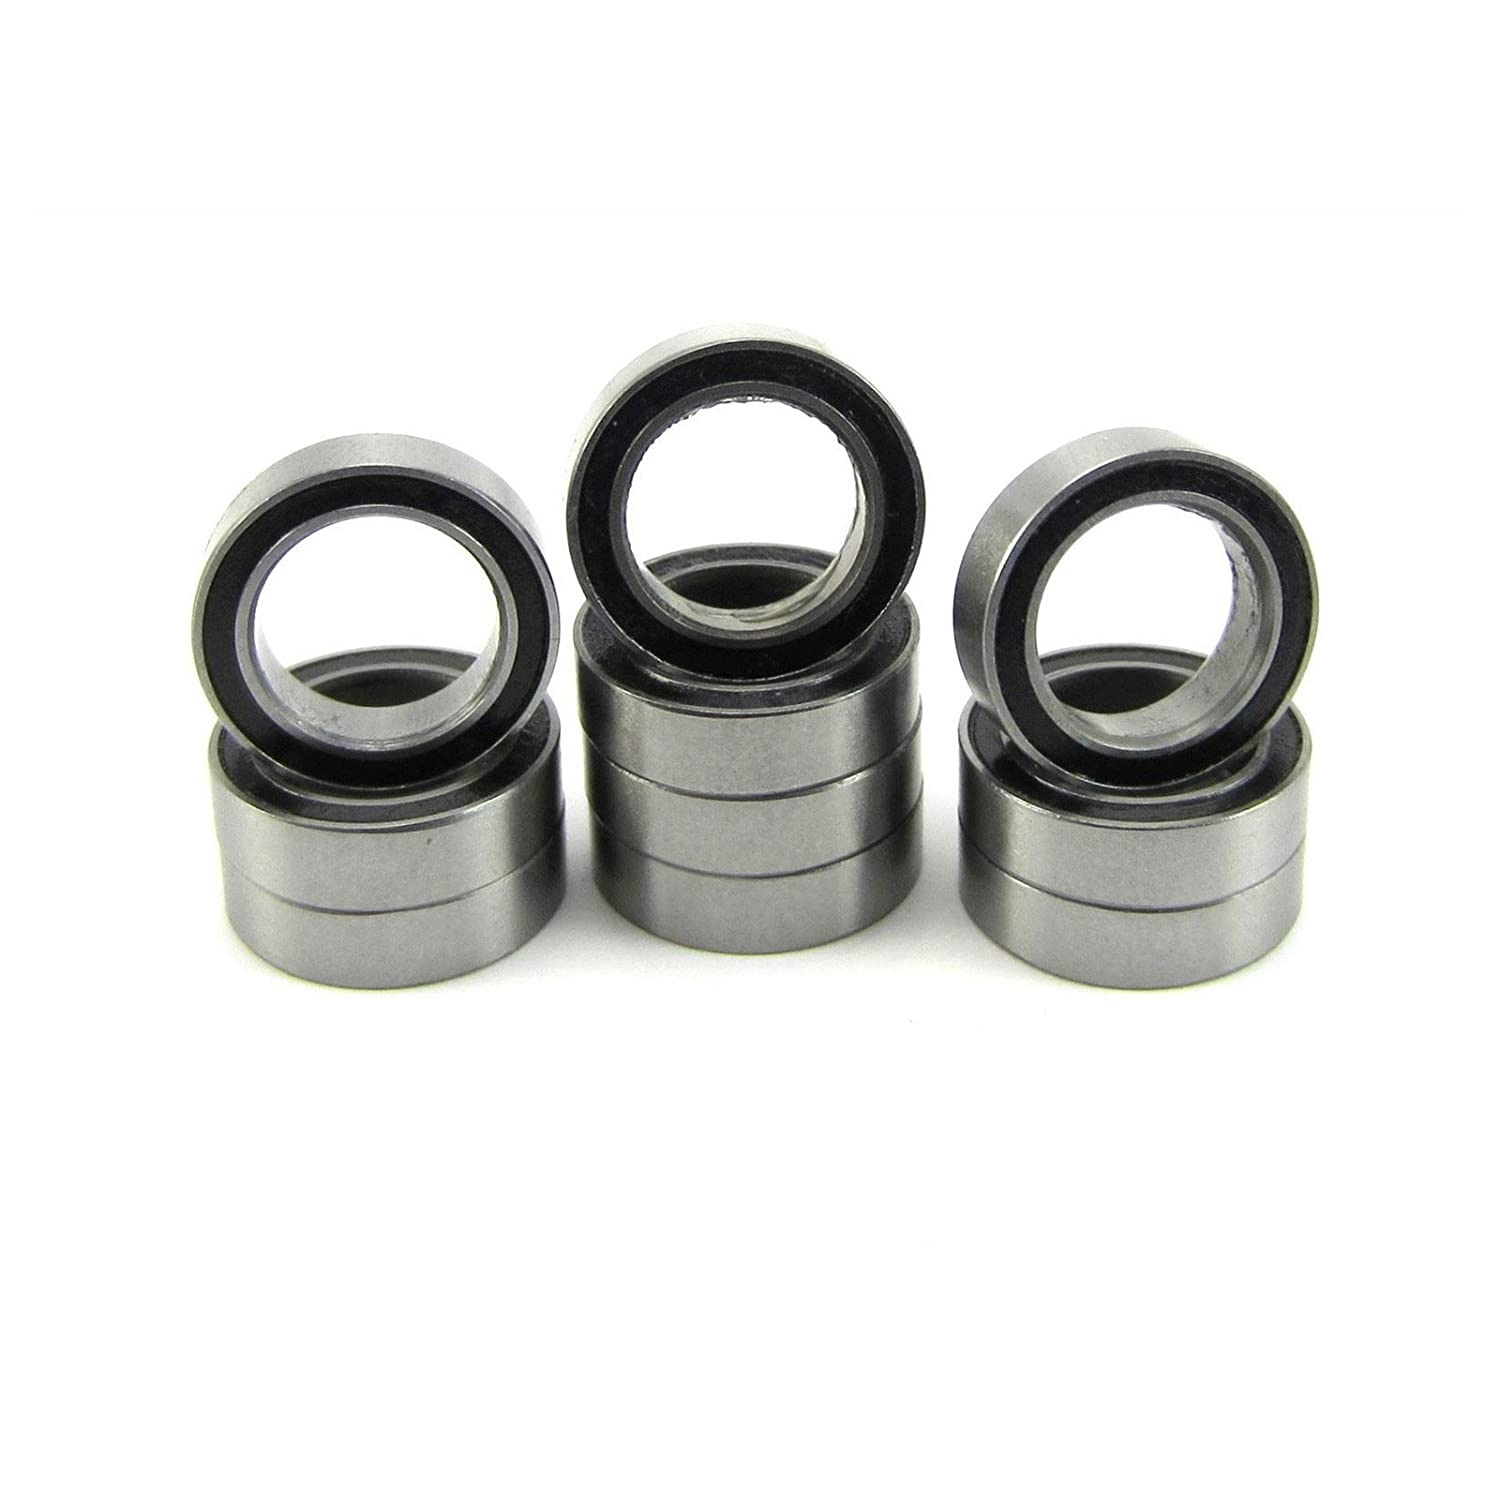 10pcs. 10x15x4mm Precision Ball Bearings Steel ABEC 1 Rubber Seals TRB RC